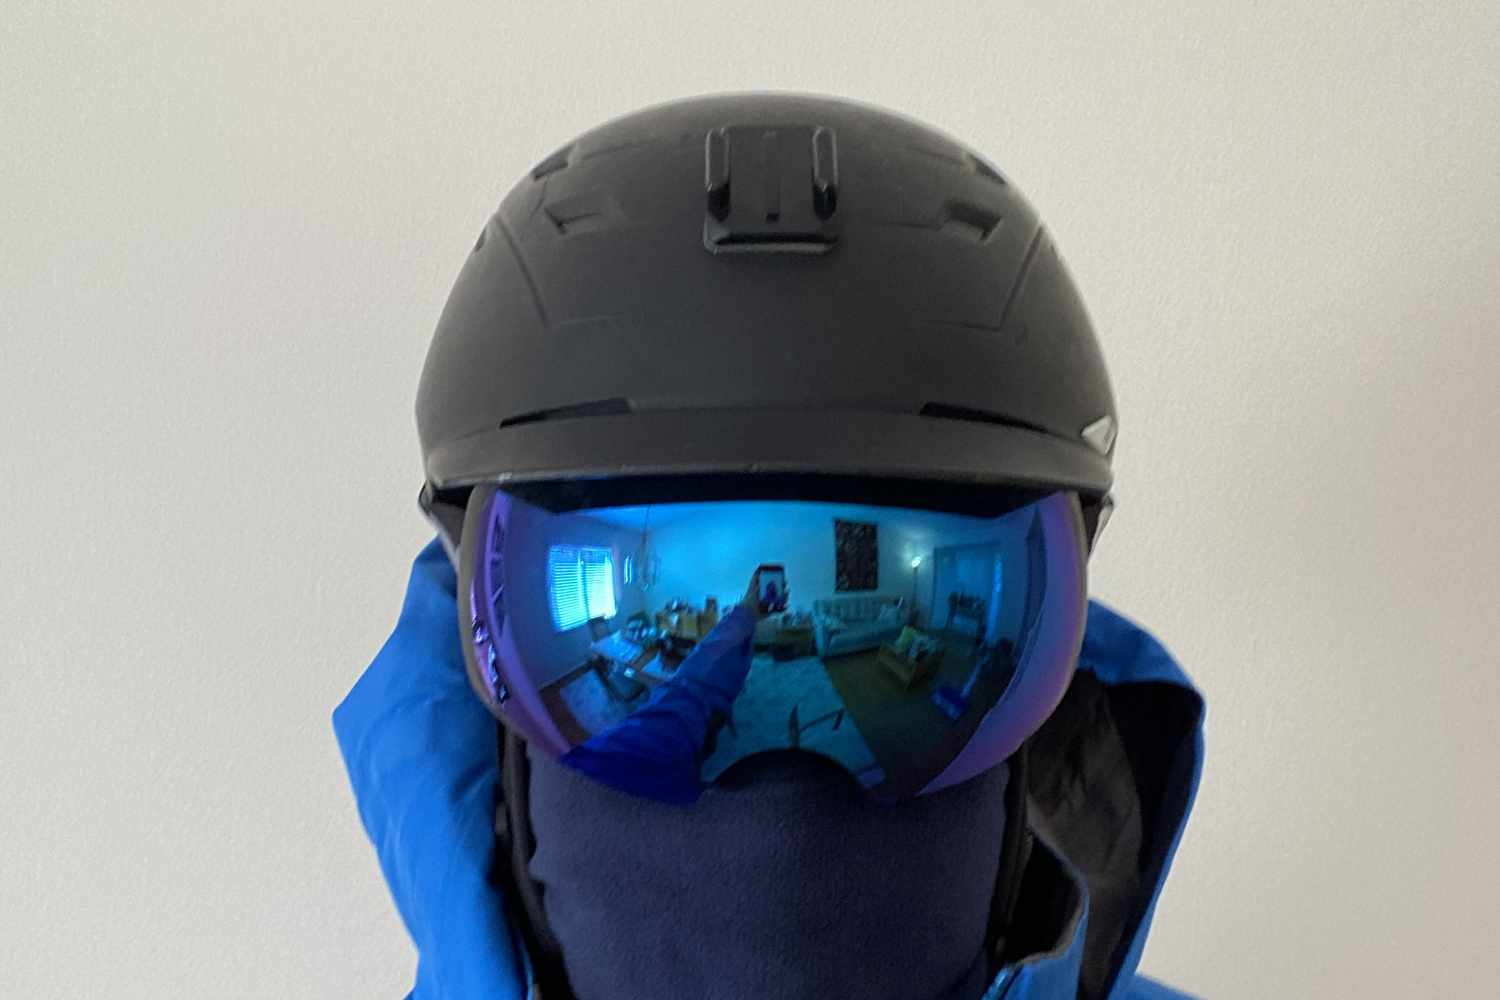 OM goggle smith helmet front view